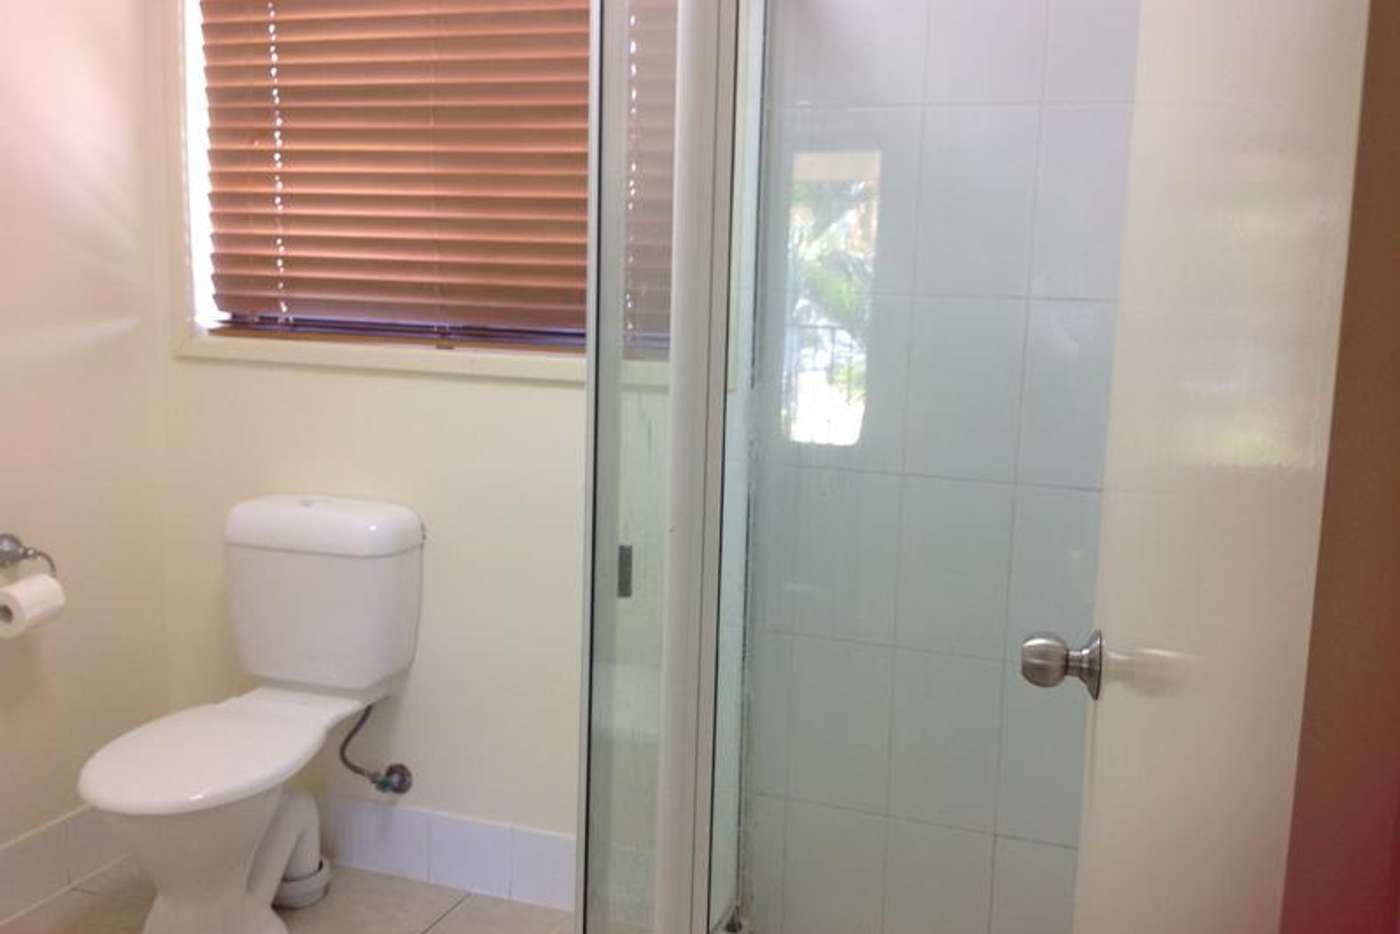 Sixth view of Homely unit listing, 24 / 13-15 Ann St, Torquay QLD 4655